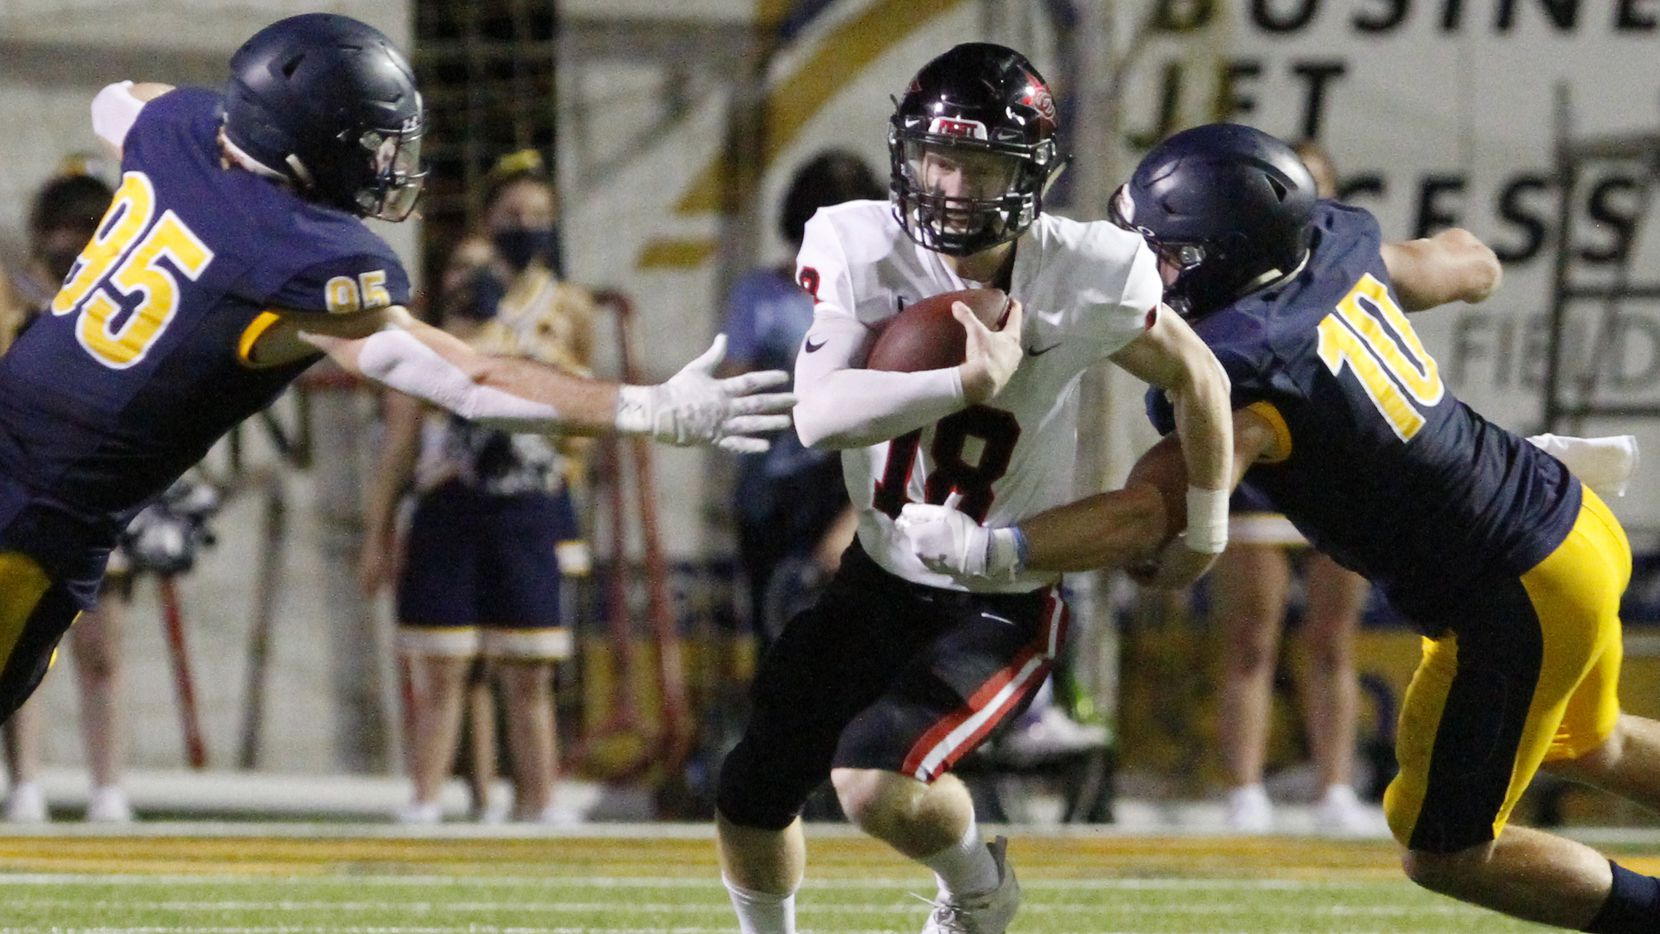 Coppell senior quarterback Ryan Walker (18) is nearly sacked on a play by Highland Park defenders  junior Jack Curtis (95) and senior Marshall Landwehr (10) during the first half of a non-district football game, on Friday night, Oct. 09, 2020 at Highland Park High School in Dallas.